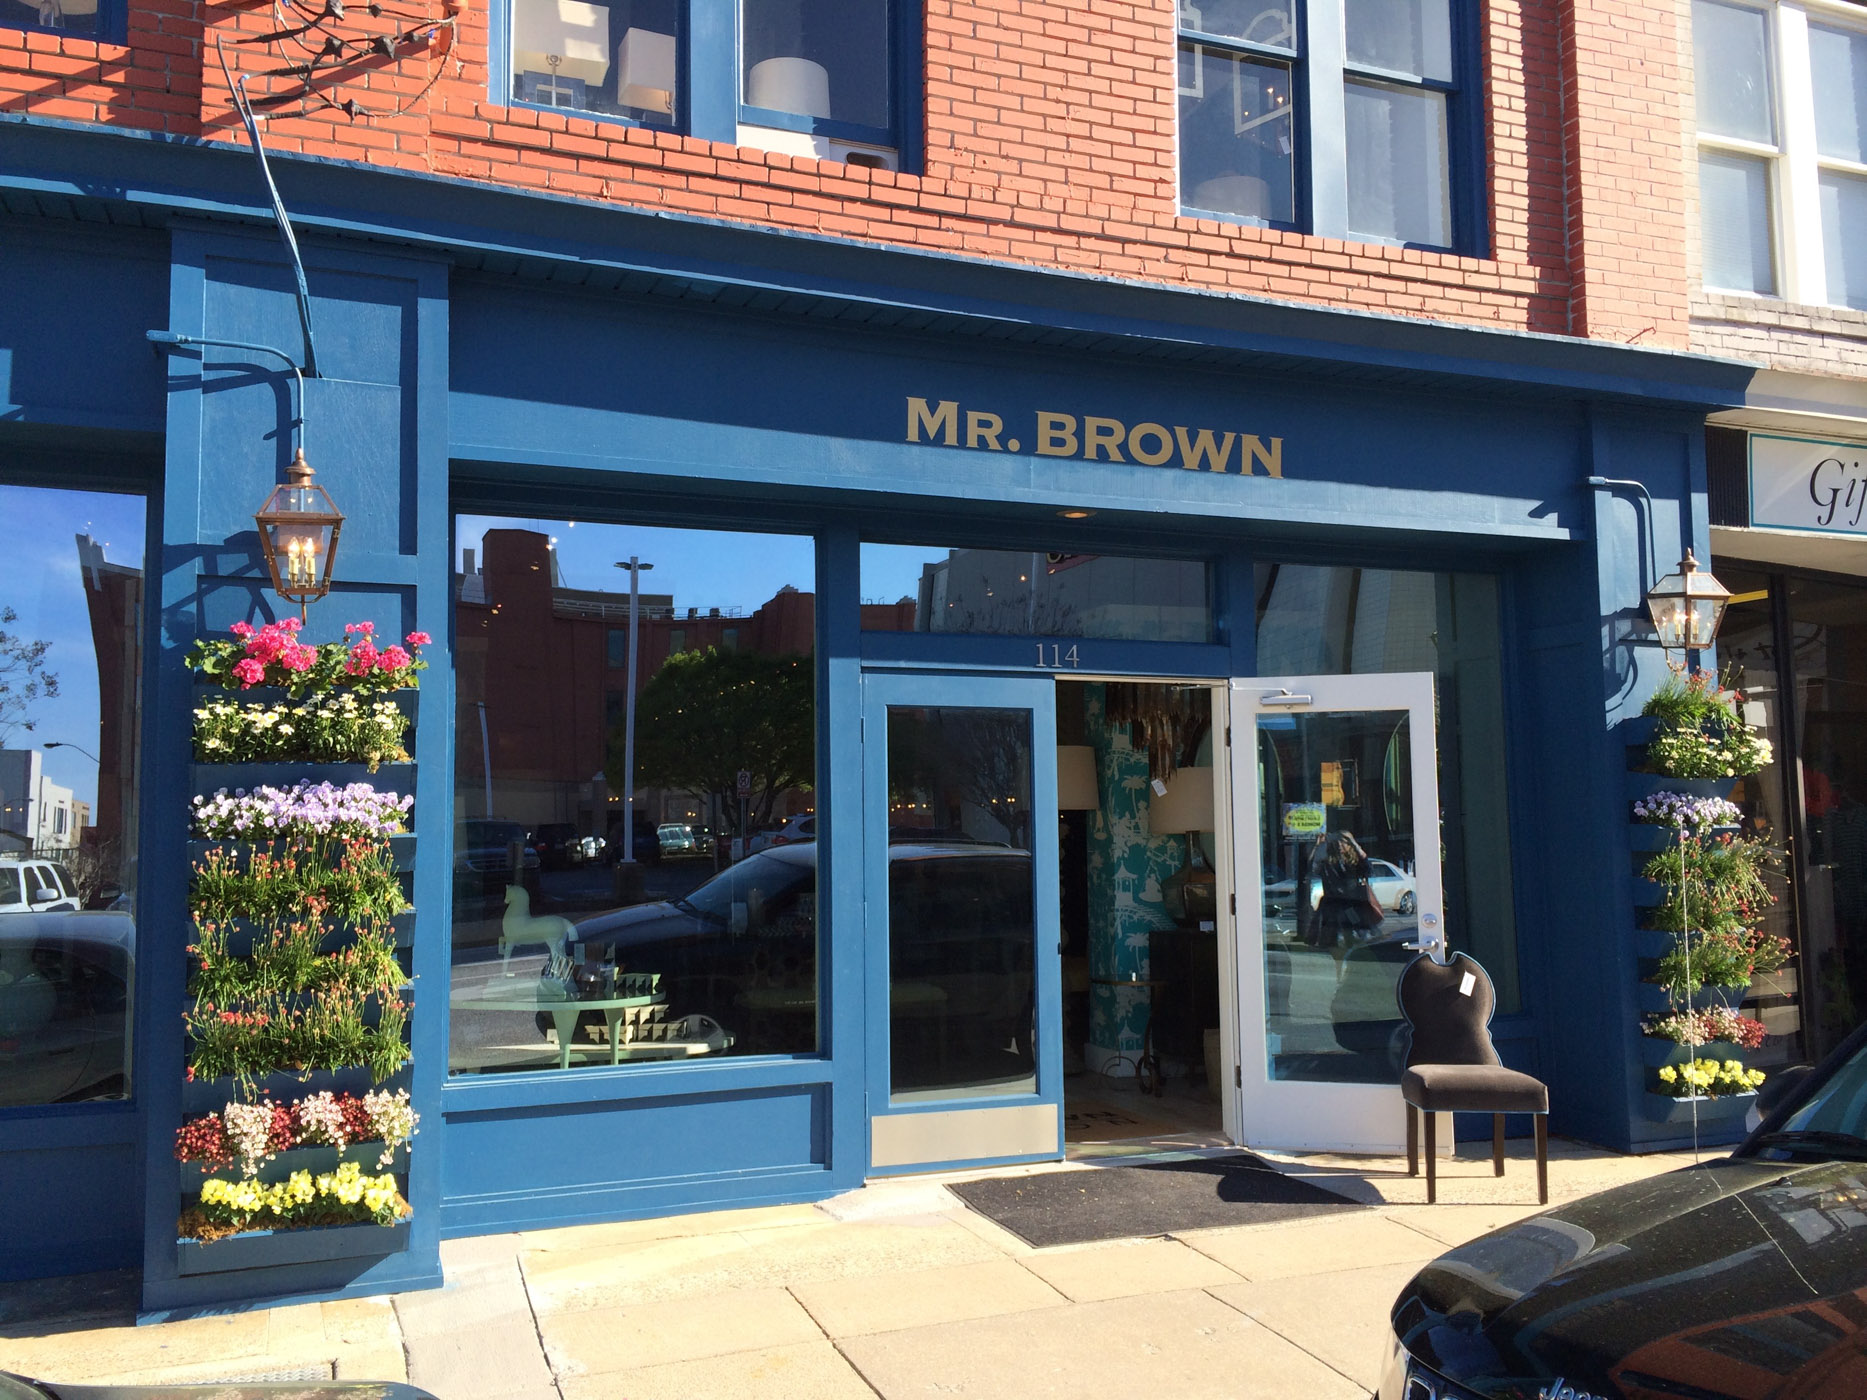 Speaking of England,  Mr. Brown London  is a favorite stop. I adore their store facade with the bright blue planters of ingenious design.